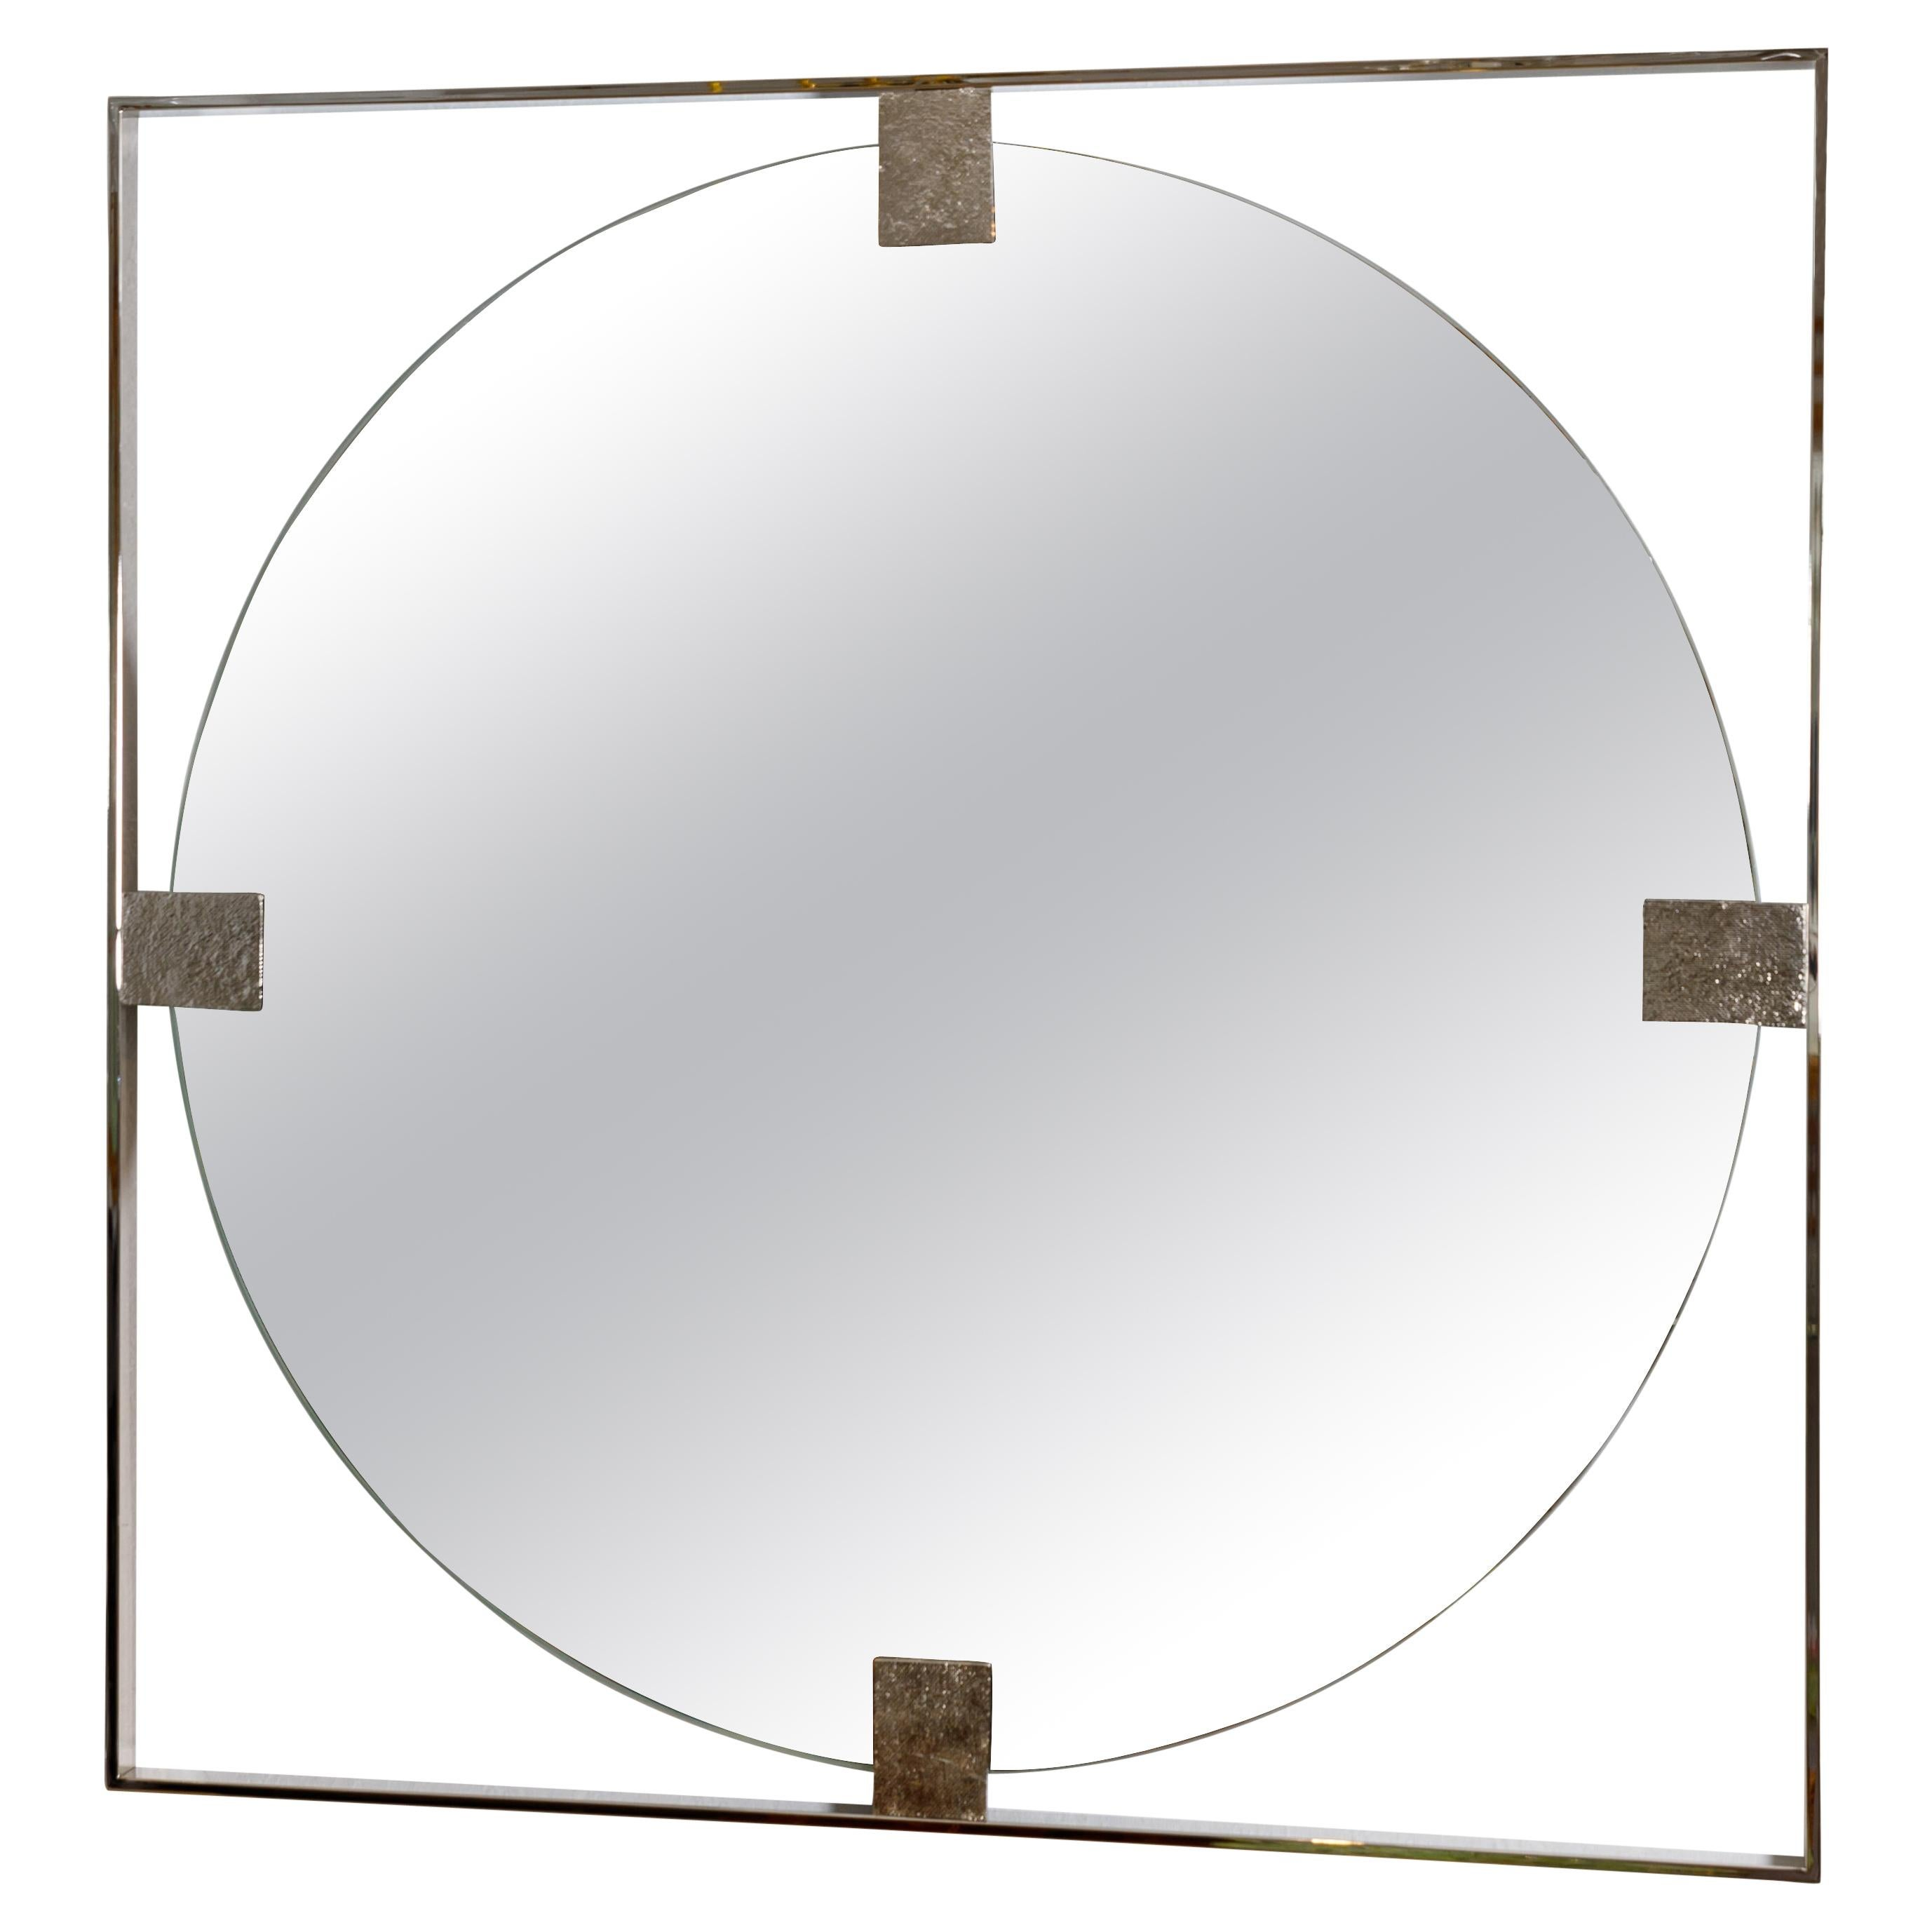 Floating Round Mirror with Nickel Surround and Embossed Detail